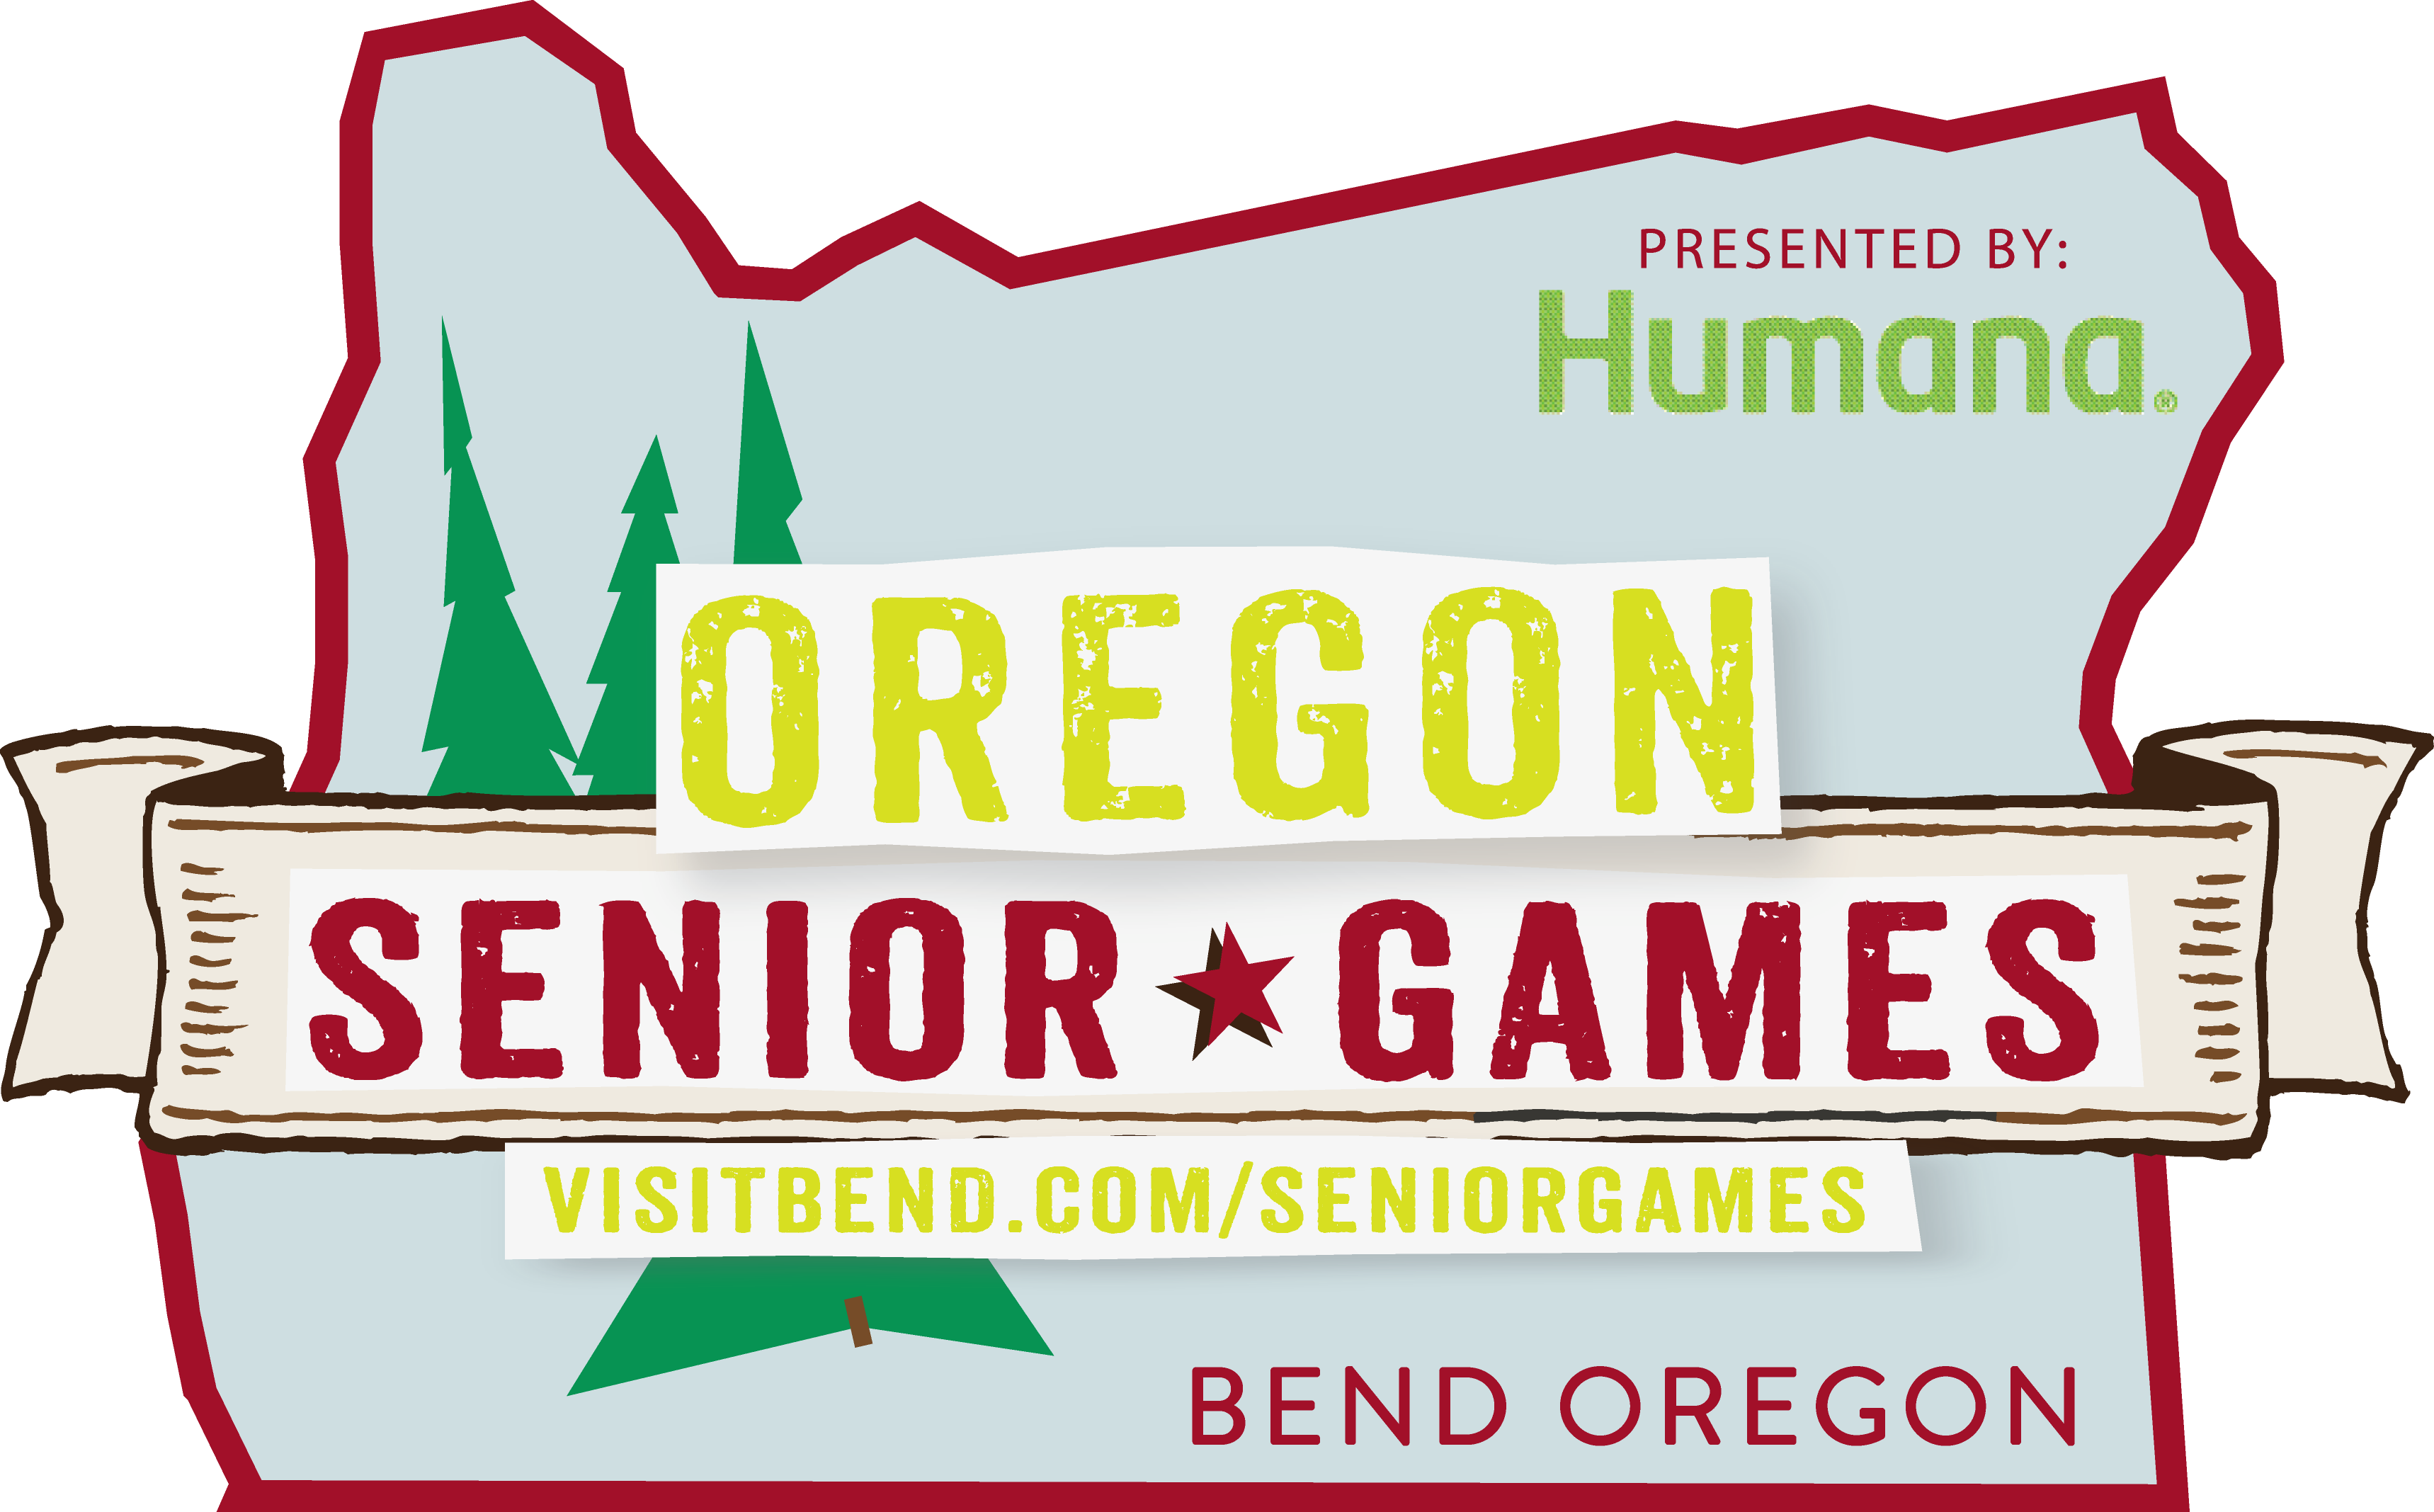 June 18-22, 2014 Bend, Oregon